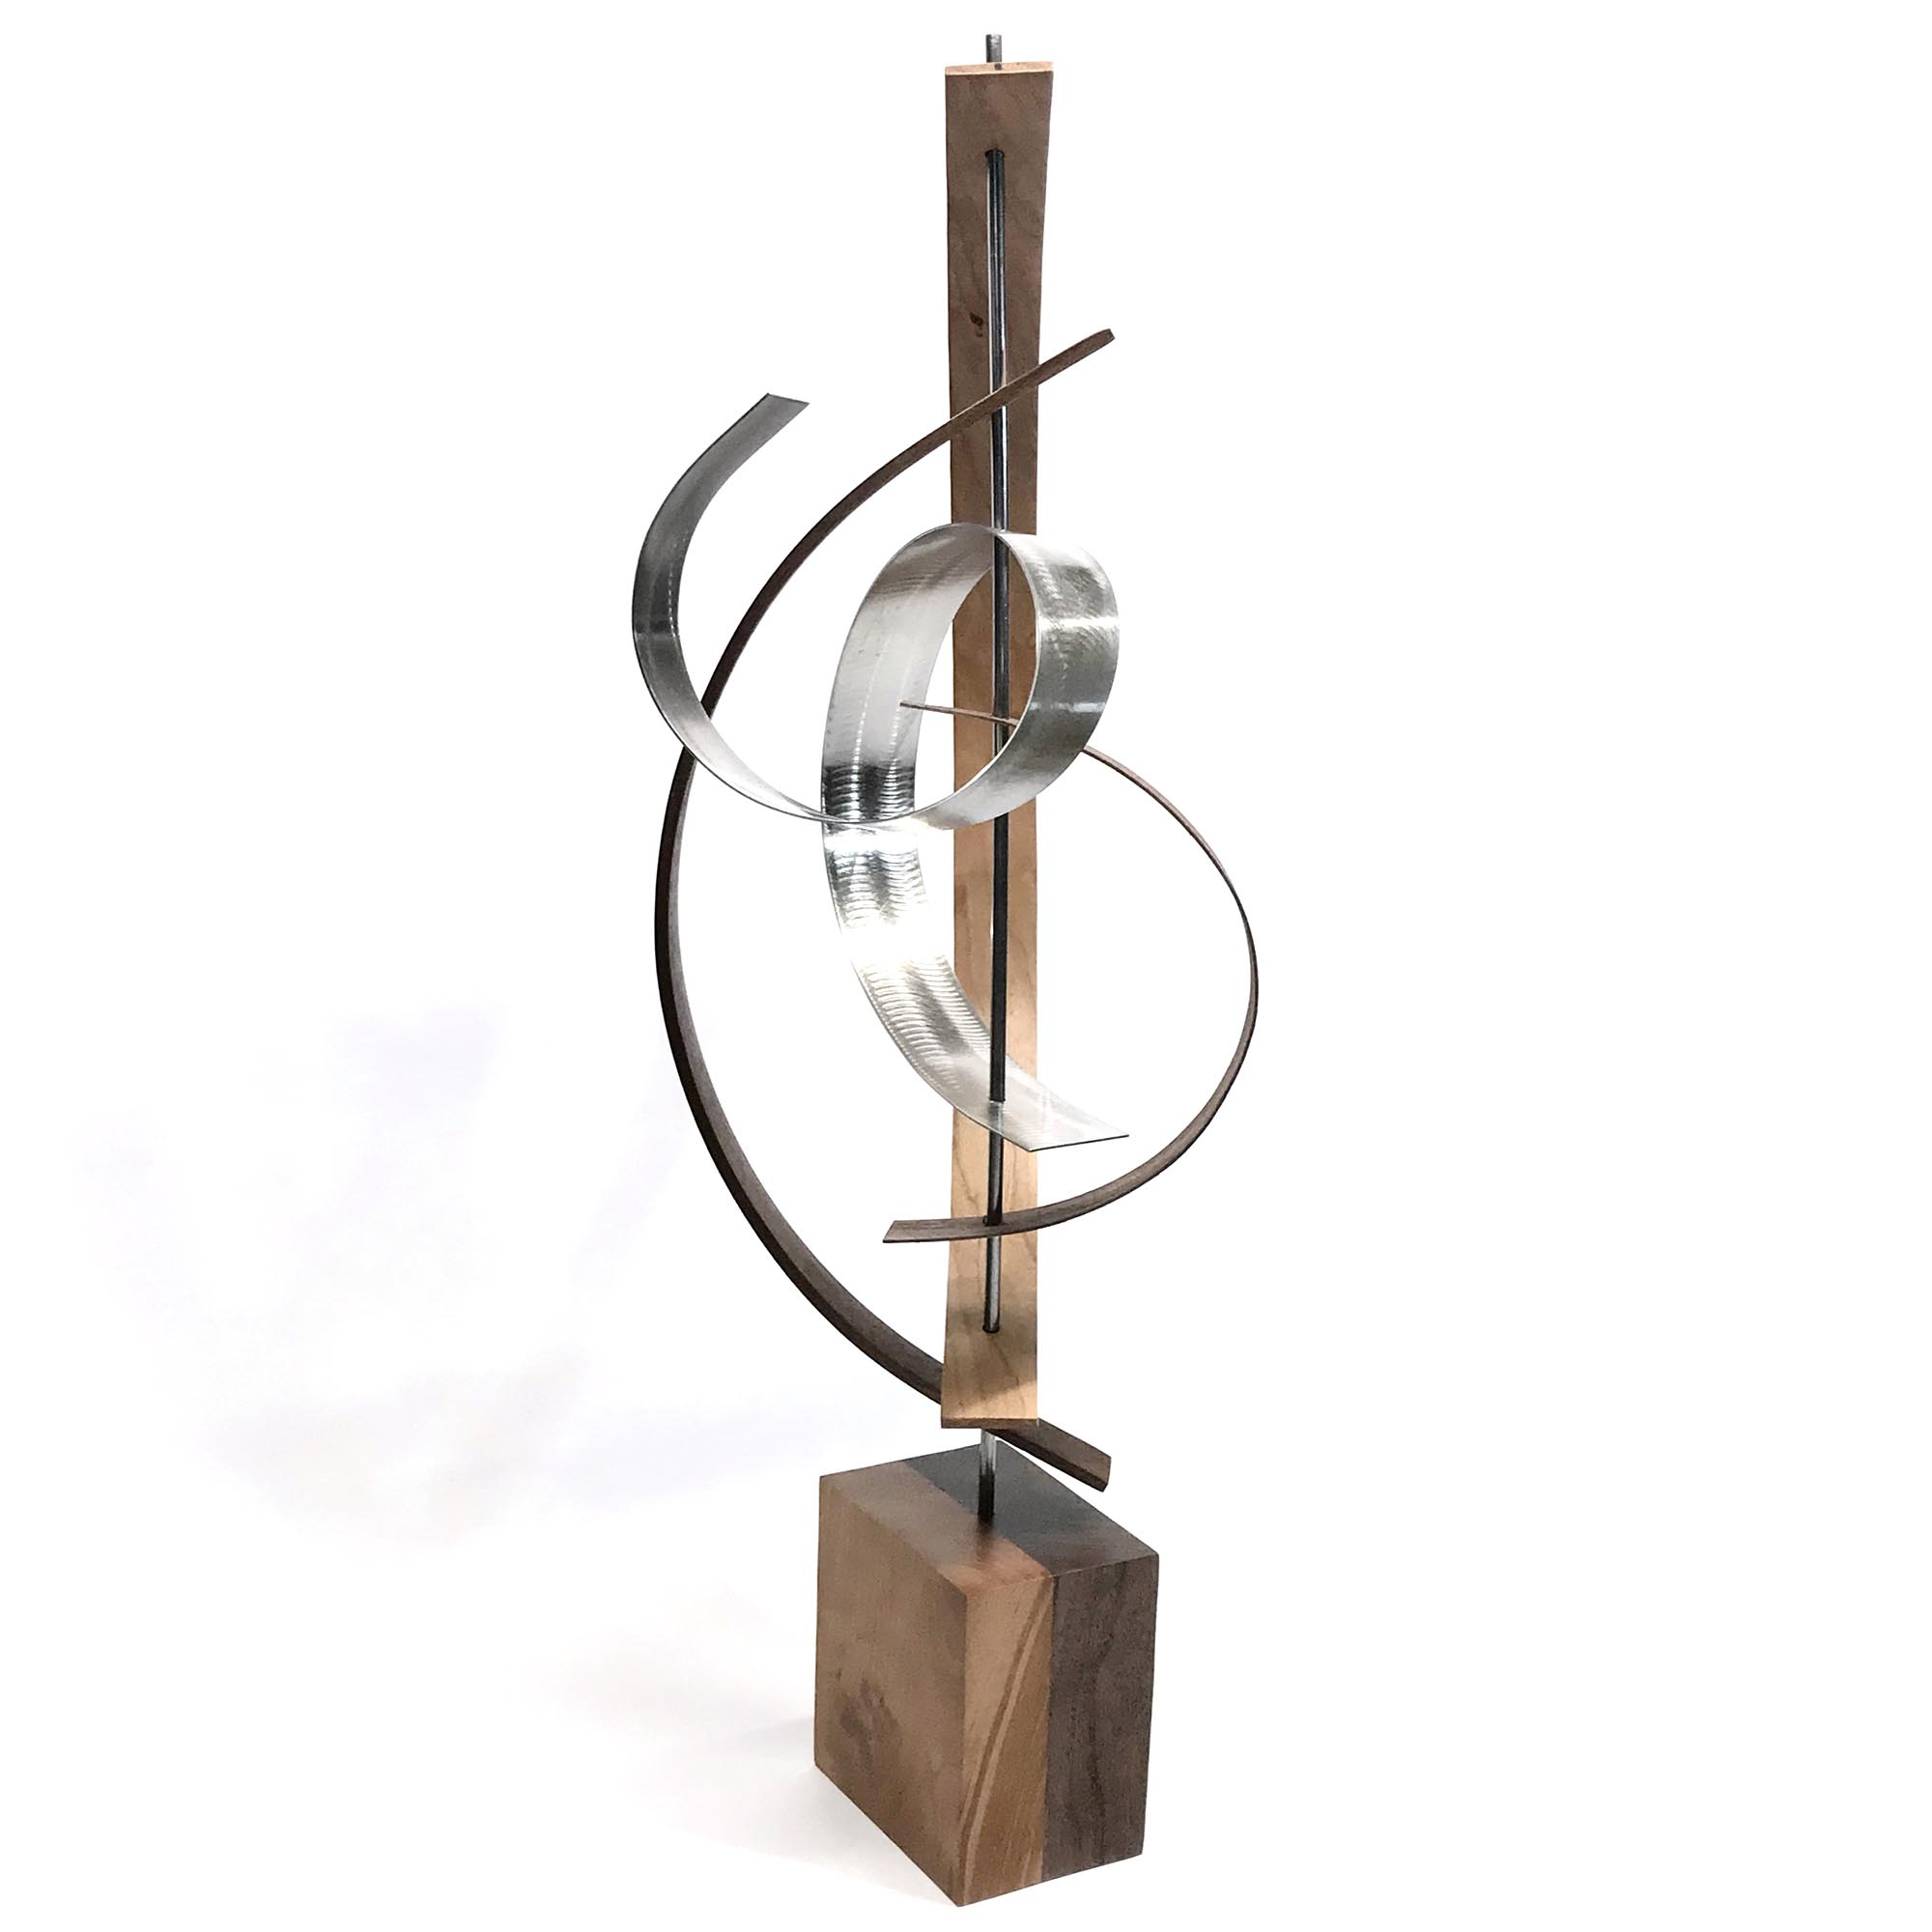 Lift by Jackson Wright - Modern Wood Sculpture, Mid-Century Home Decor - Image 3